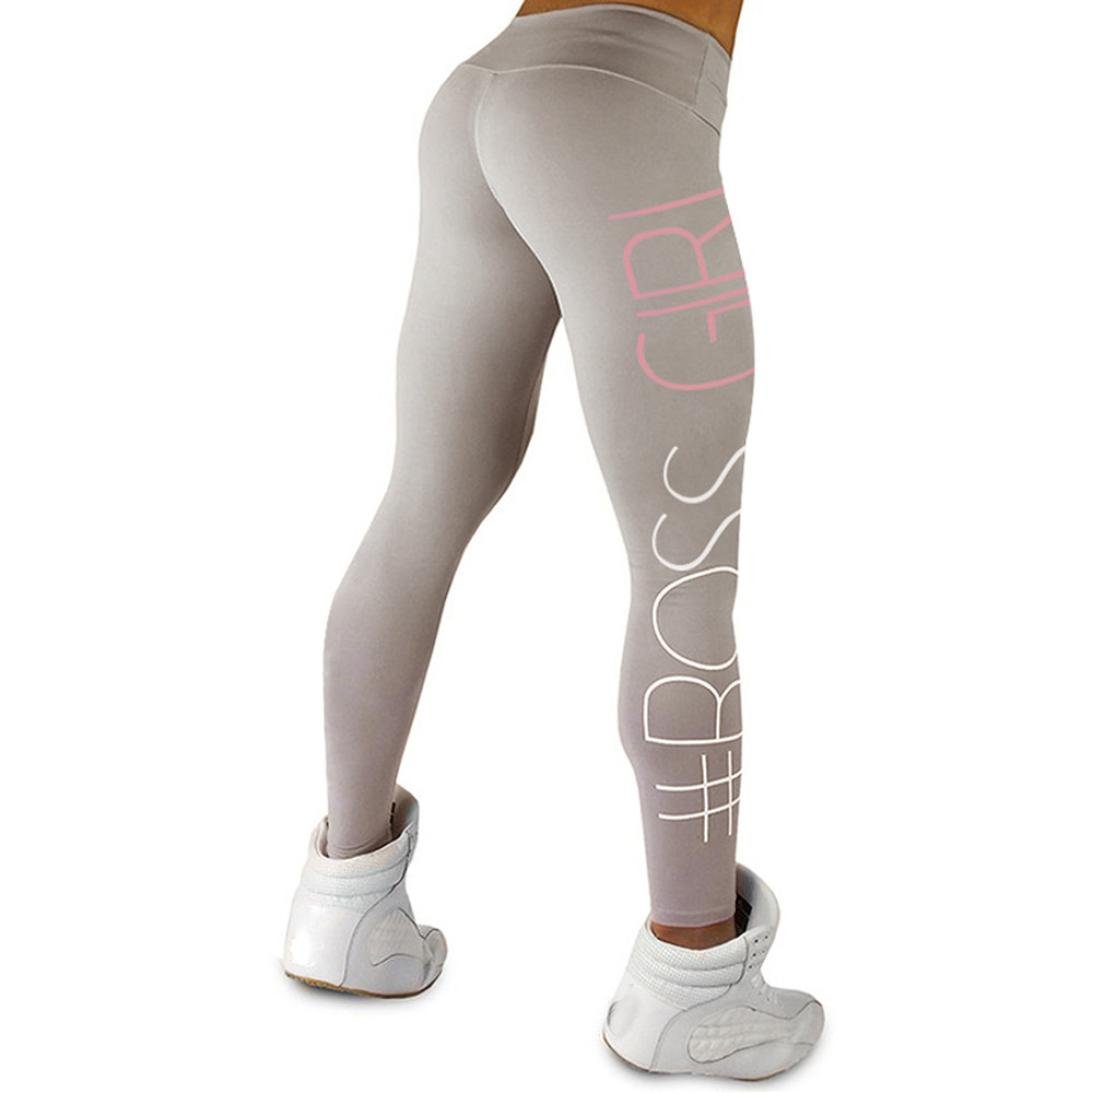 18a87919559e7a Amazon.com: Hot sale!Todaies,Women Fashion Sports Leggings Workout Gym  Fitness Trouser Exercise Athletic Pants: Sports & Outdoors